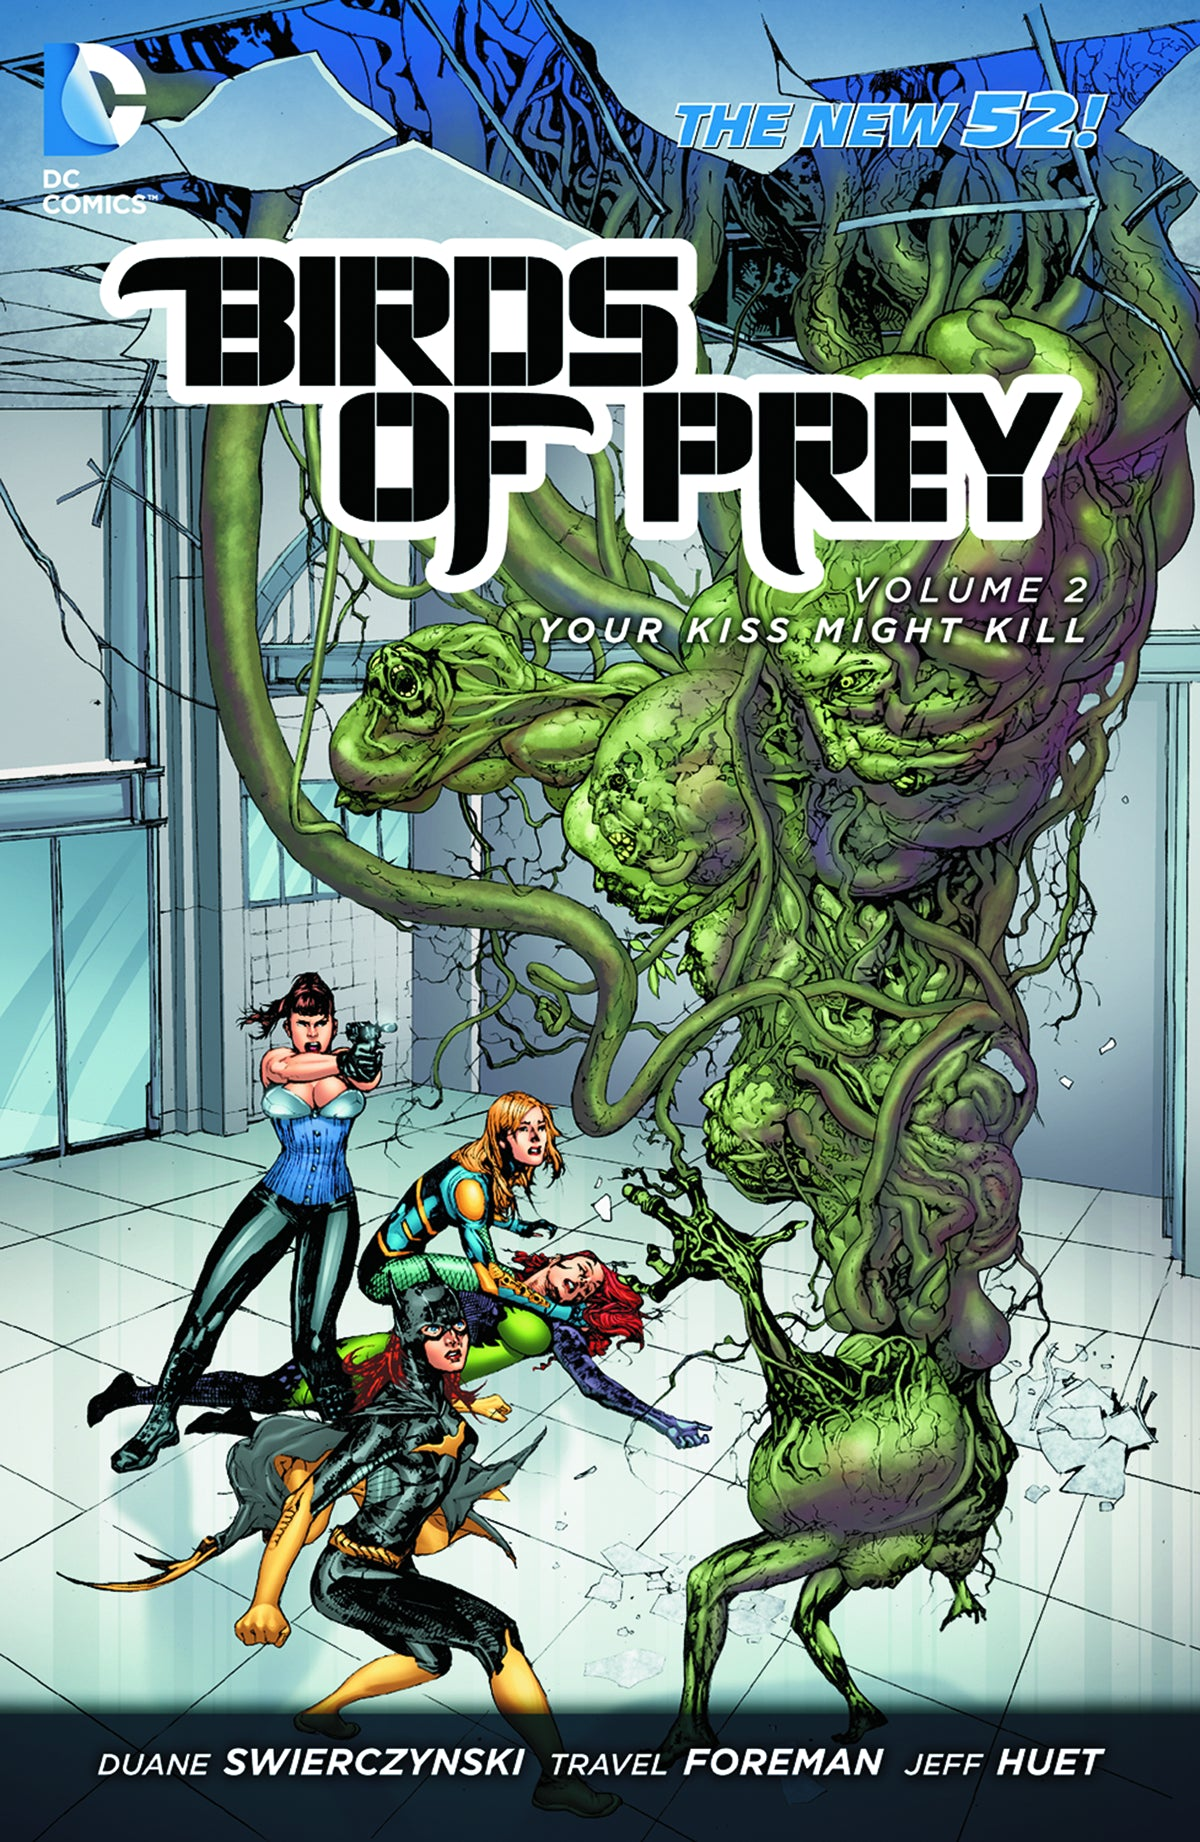 BIRDS OF PREY TP VOL 02 YOUR KISS MIGHT KILL (N52) | Game Master's Emporium (The New GME)